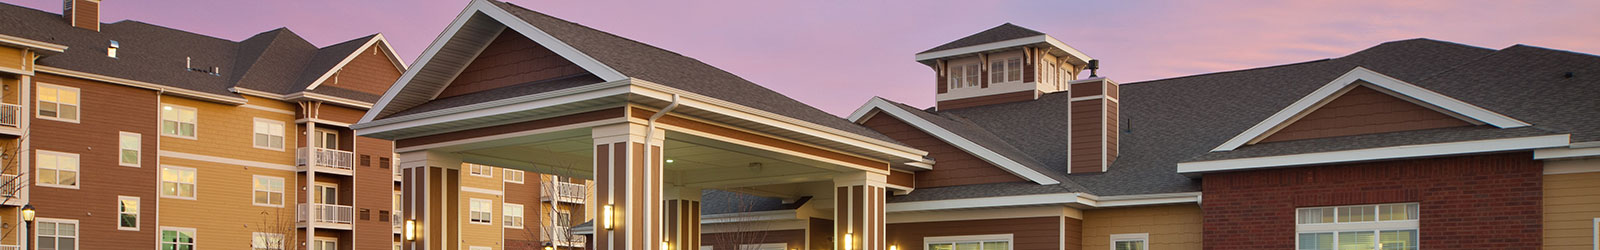 News and events at Skye at Arbor Lakes in Maple Grove, MN.